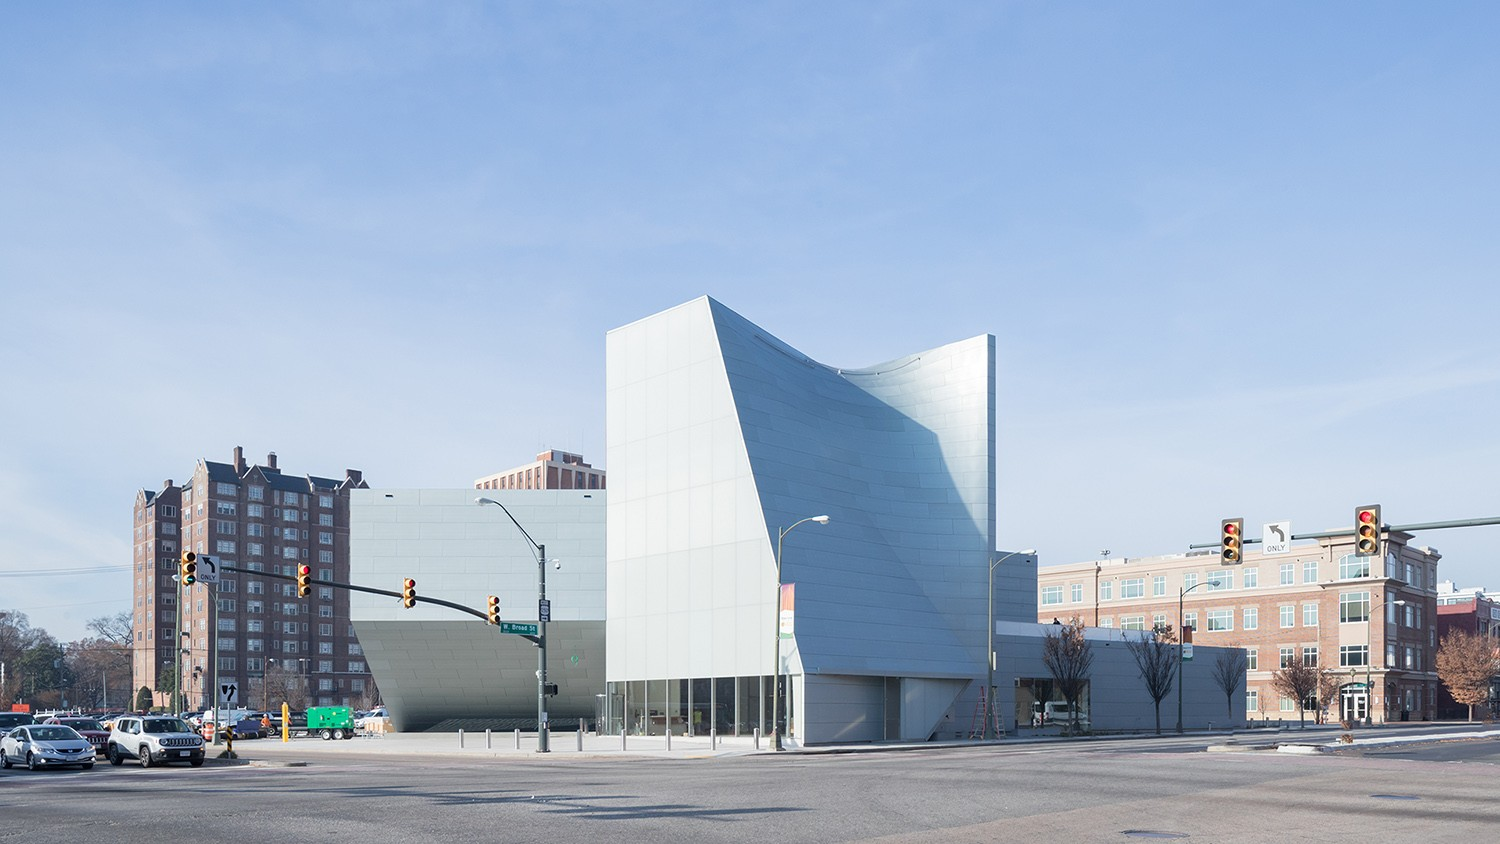 https://stevenholl.sfo2.digitaloceanspaces.com/uploads/projects/project-images/IwanBaan_ICA_VCU_17-12SHA3652_WH.jpg